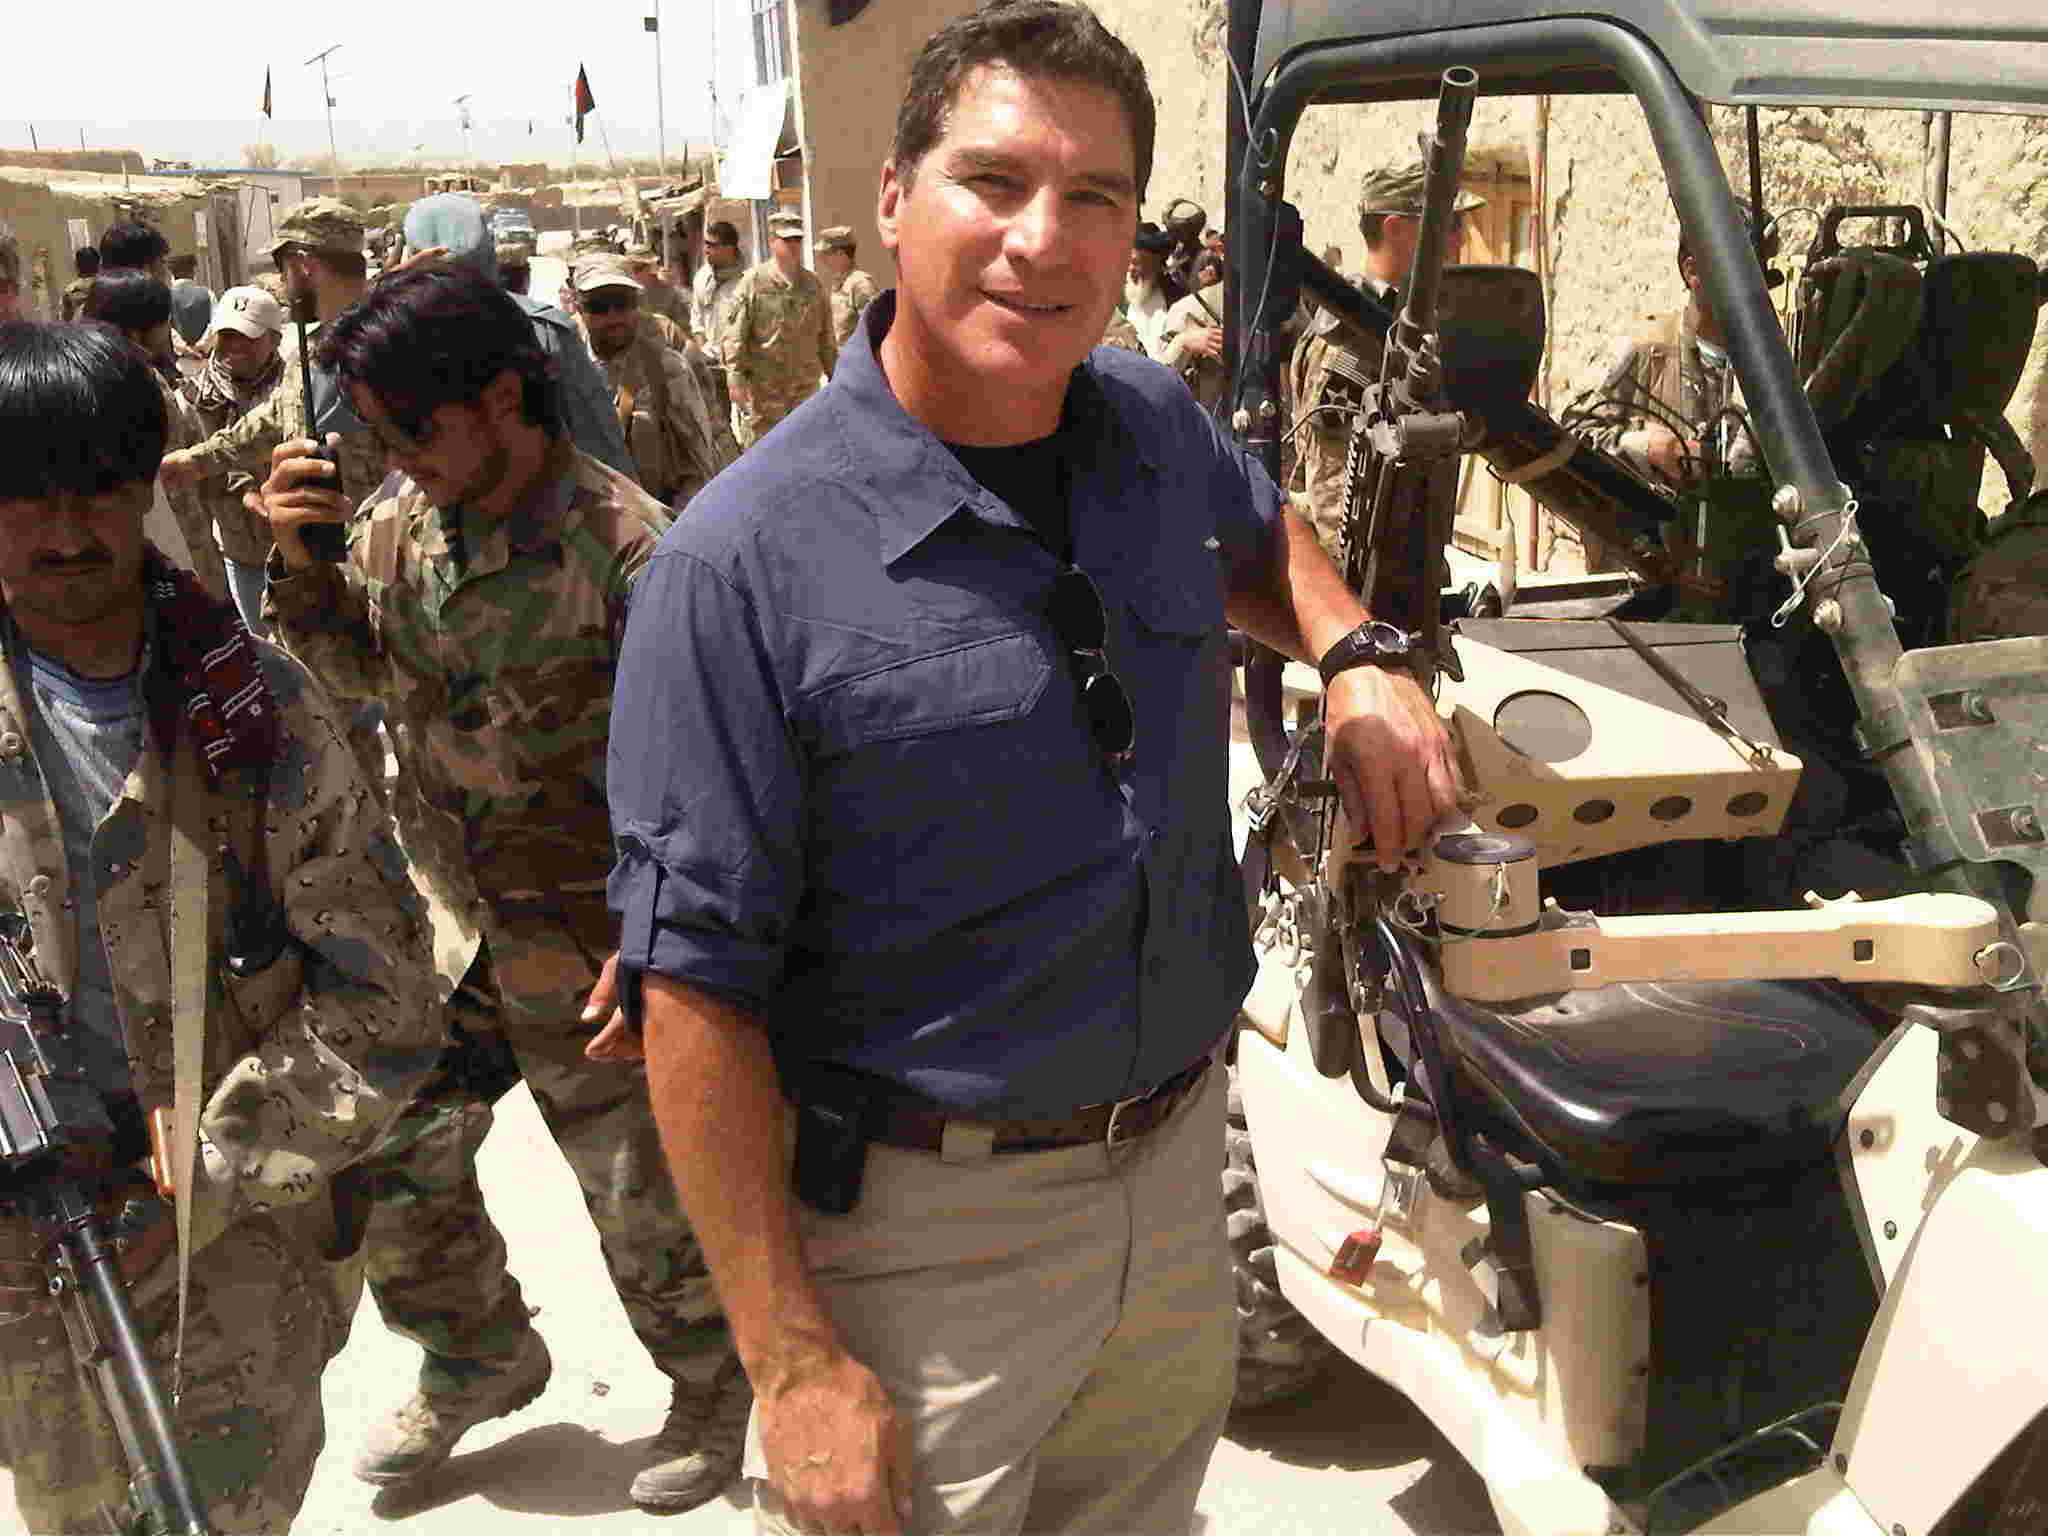 Field Correspondent Craig Rivera in the midst of local troops and equipment